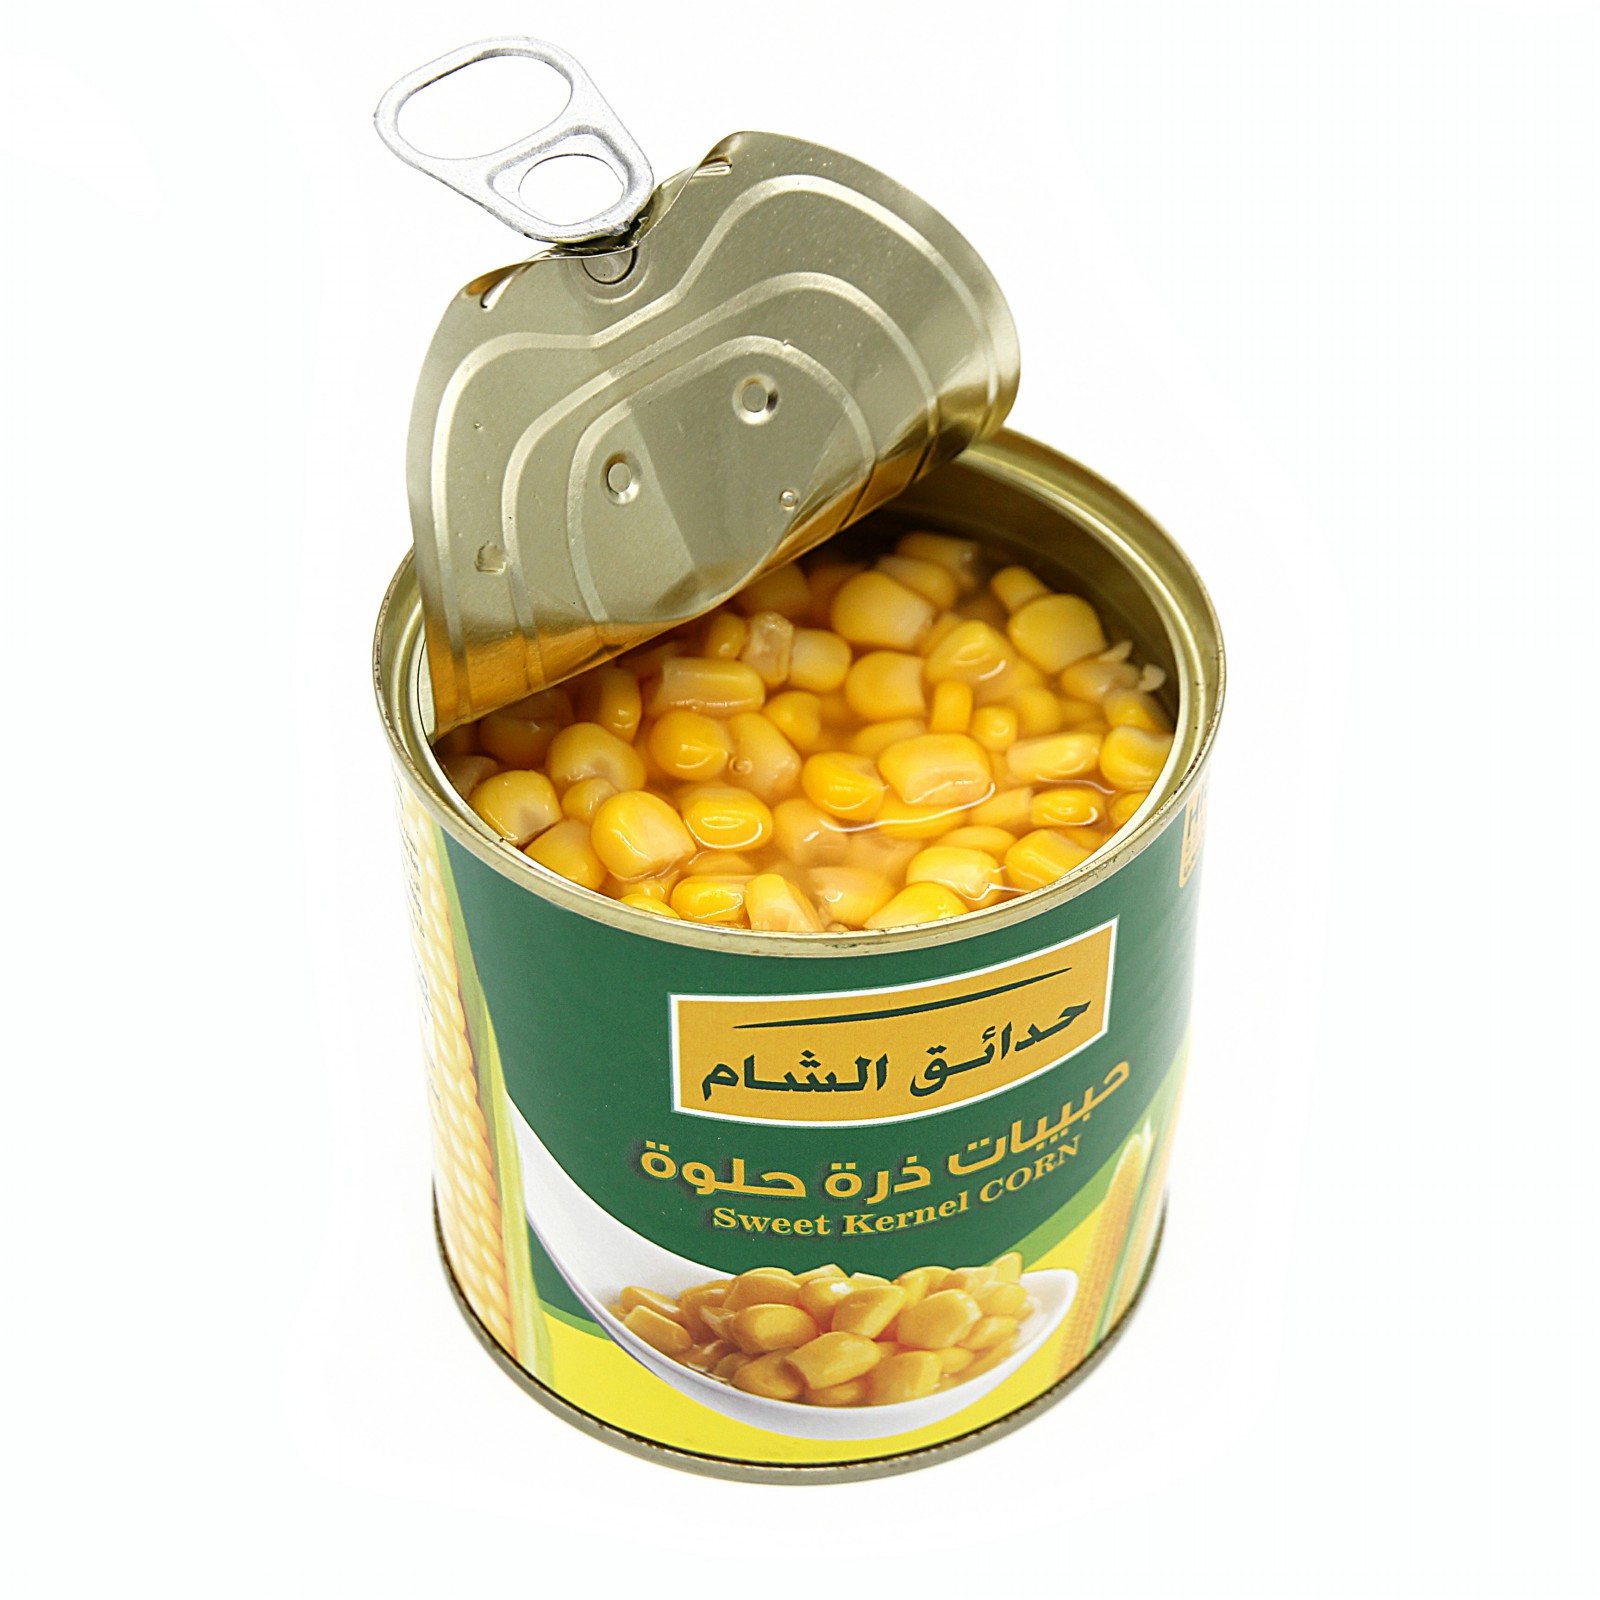 Canned sweet corn best quality